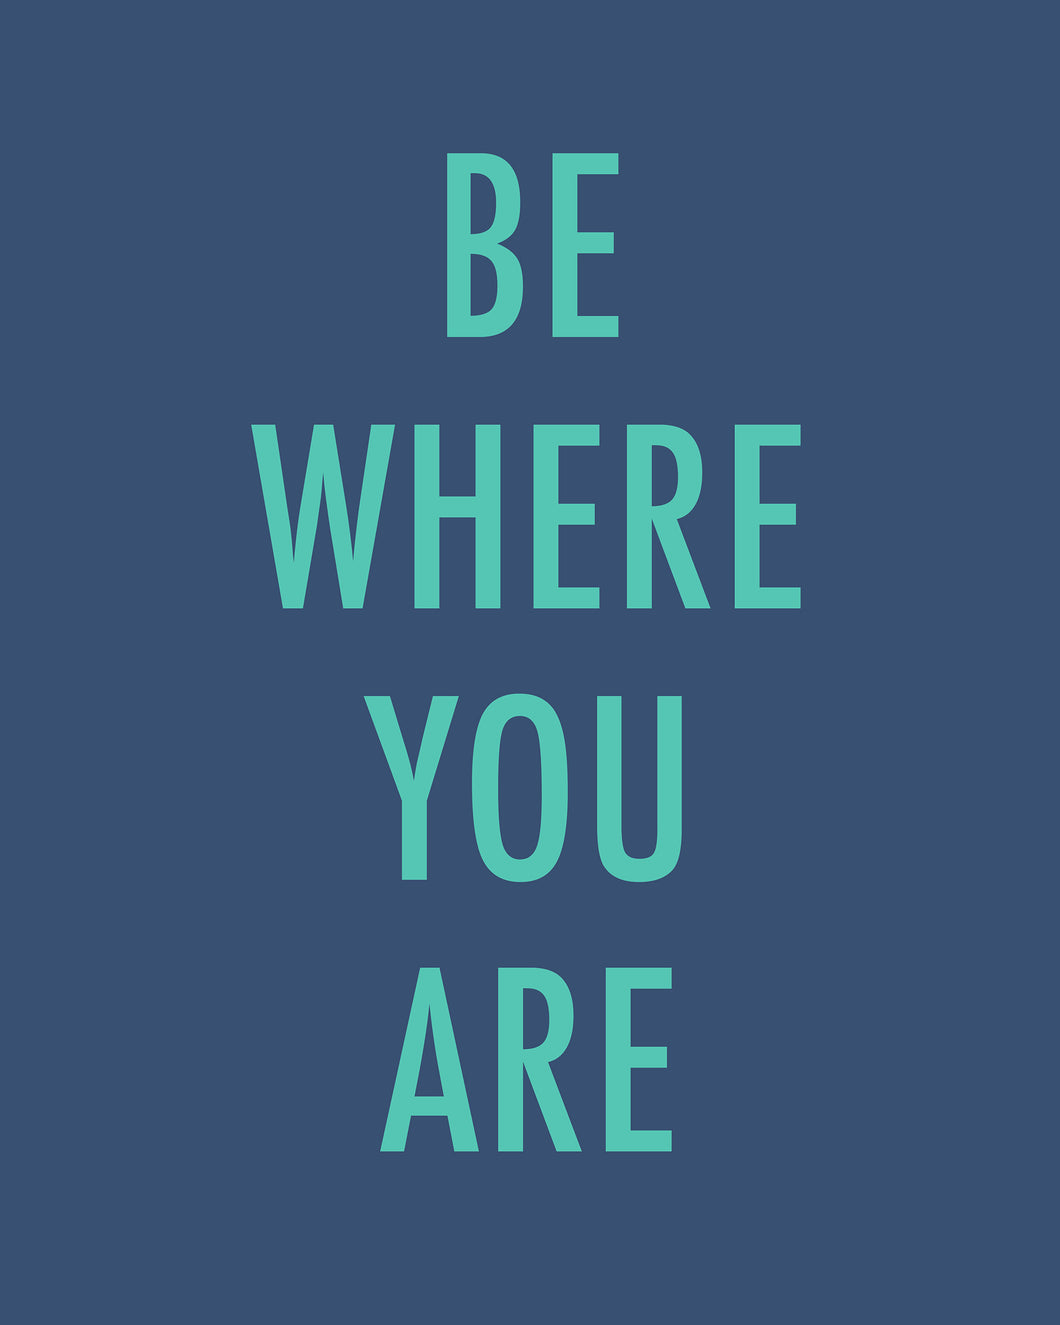 BE WHERE YOU ARE - Color Pop Print 20x24